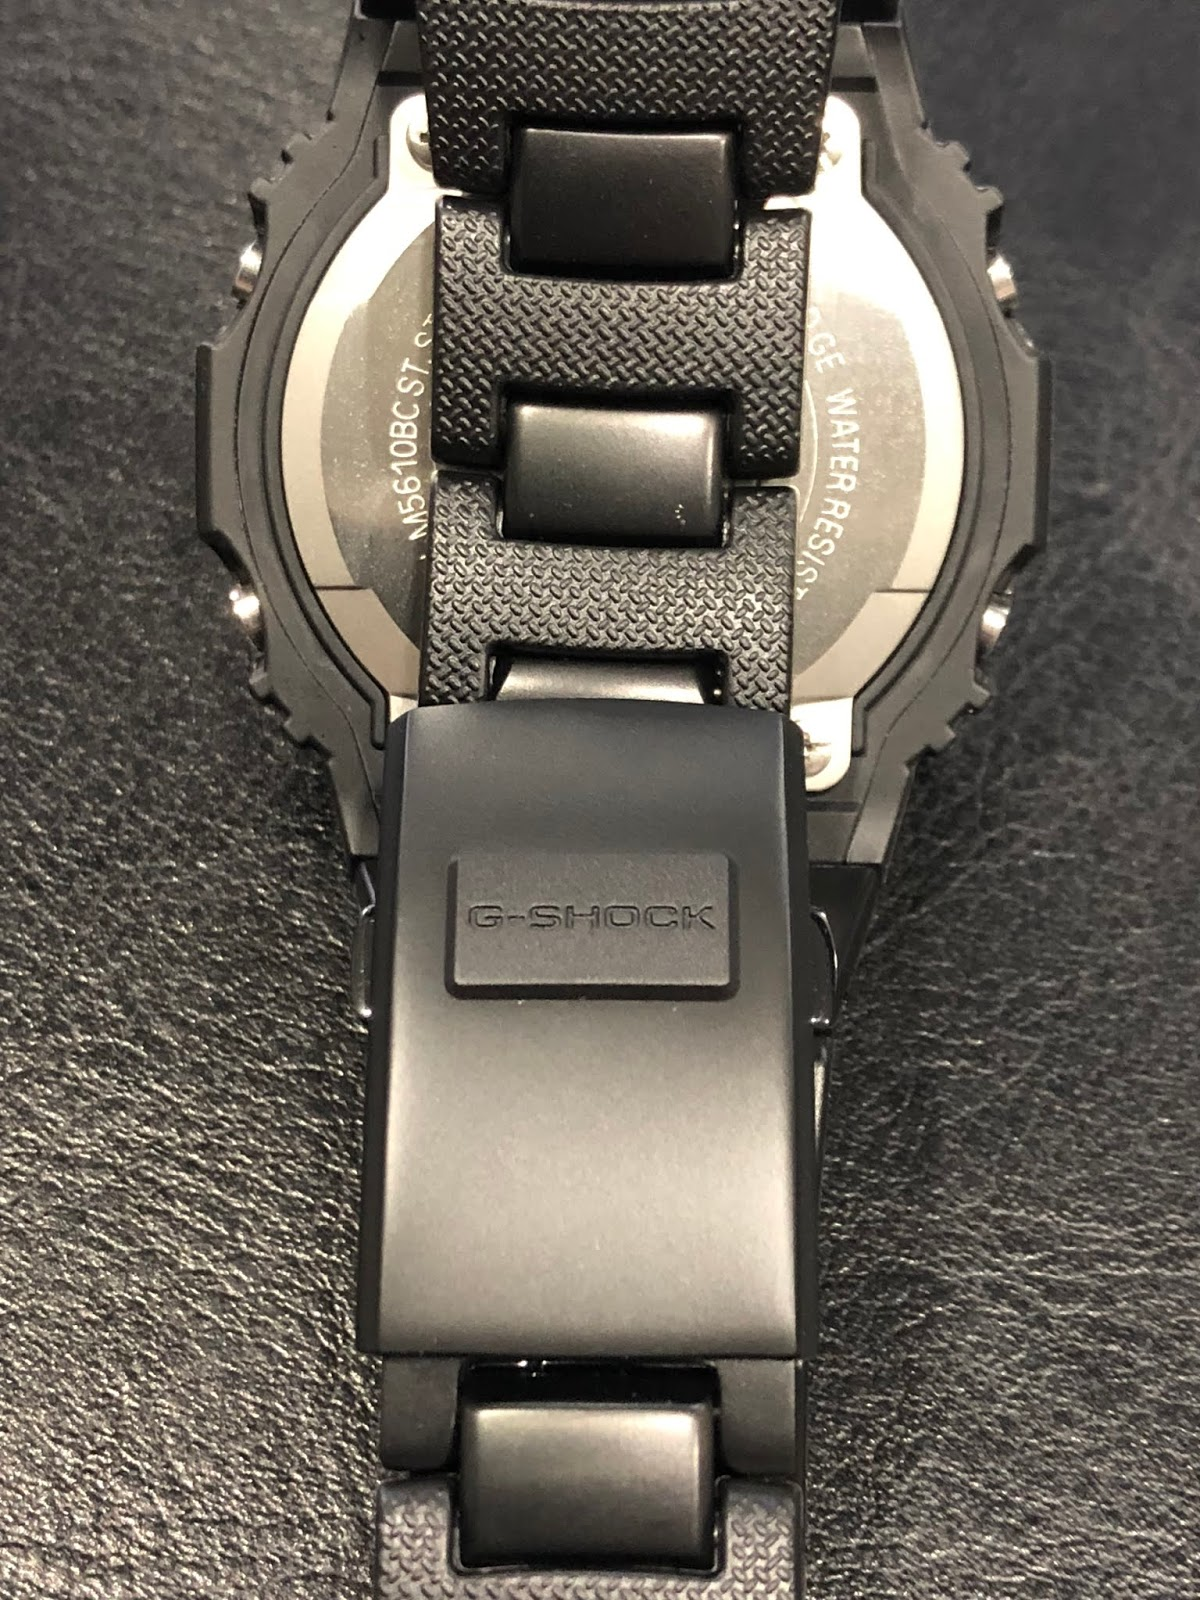 bfc902f92d906 It has four micro adjustment points for finer resizing. I especially like  the elevated G-Shock logo on the clasp surface.